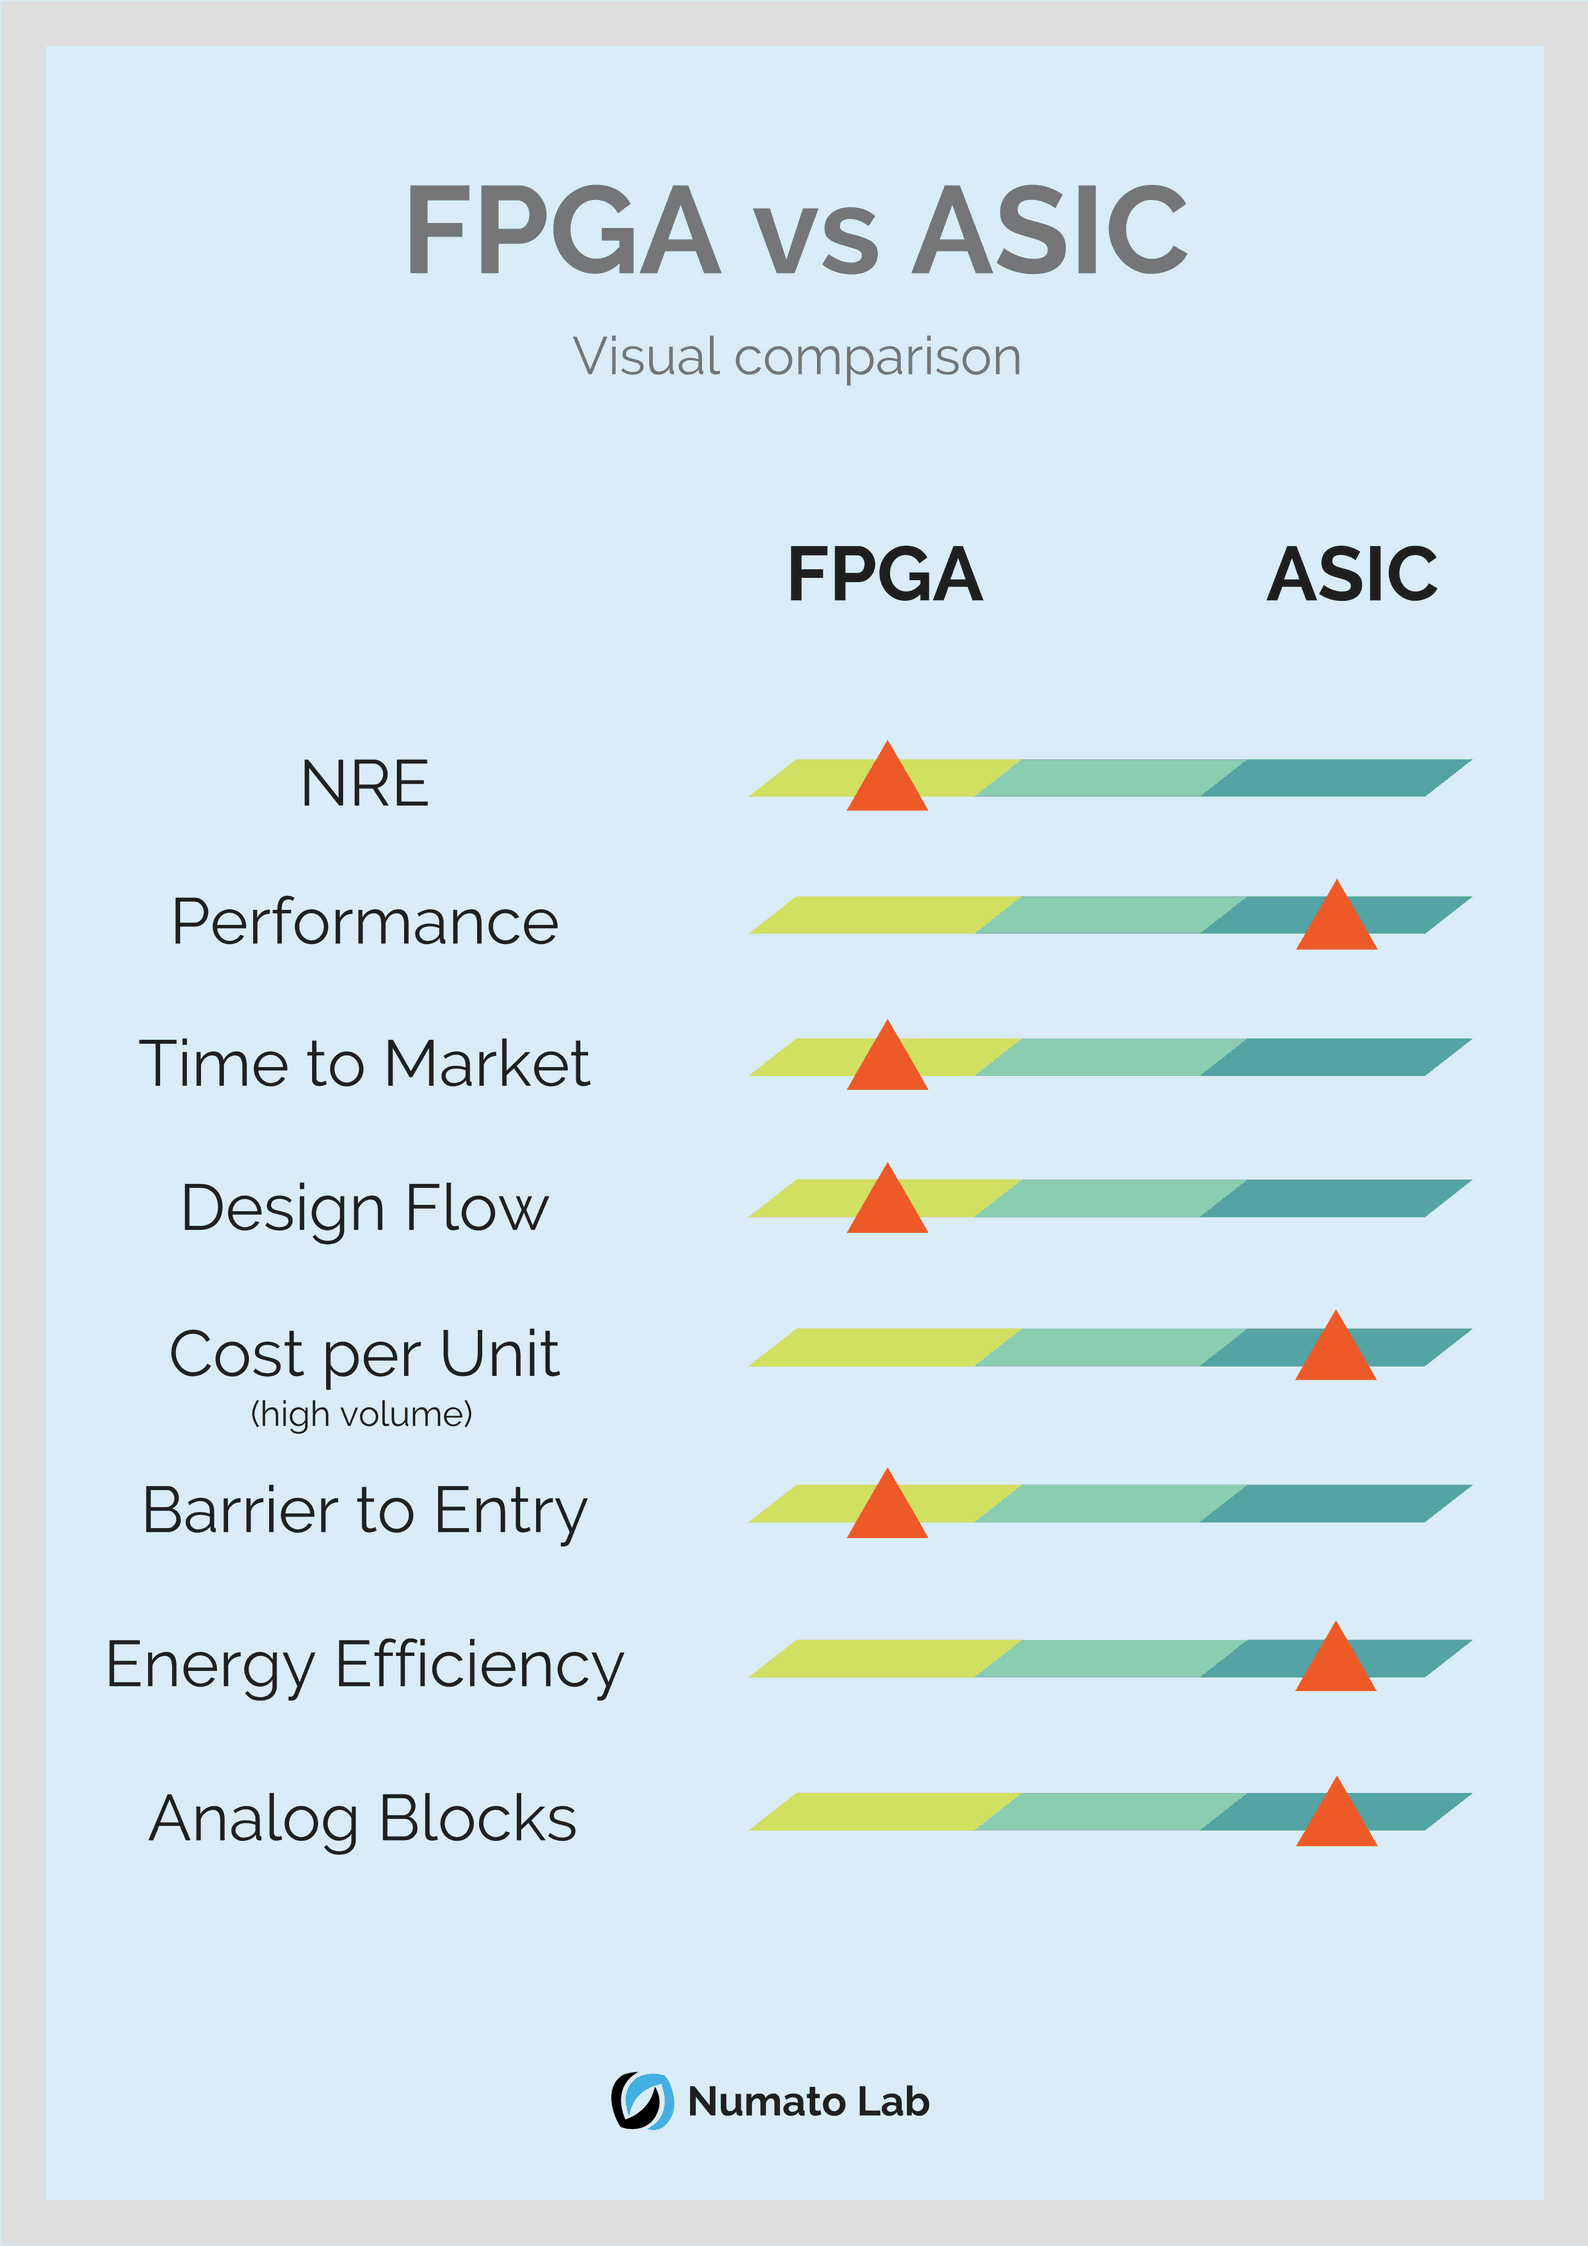 FPGA vs ASIC - Visual Comparison